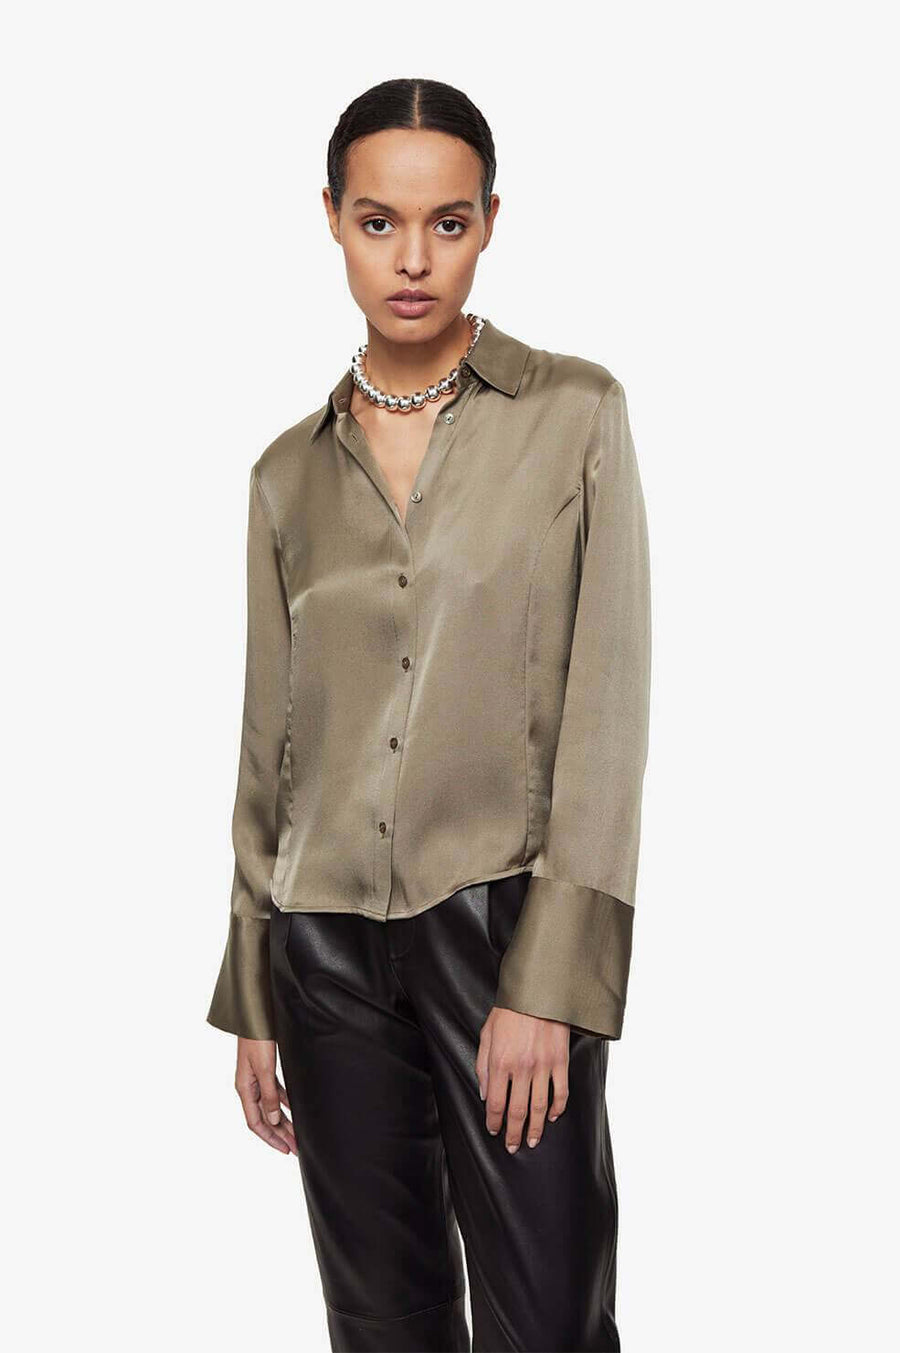 Anine Bing Mackenzie Top available at The New Trend